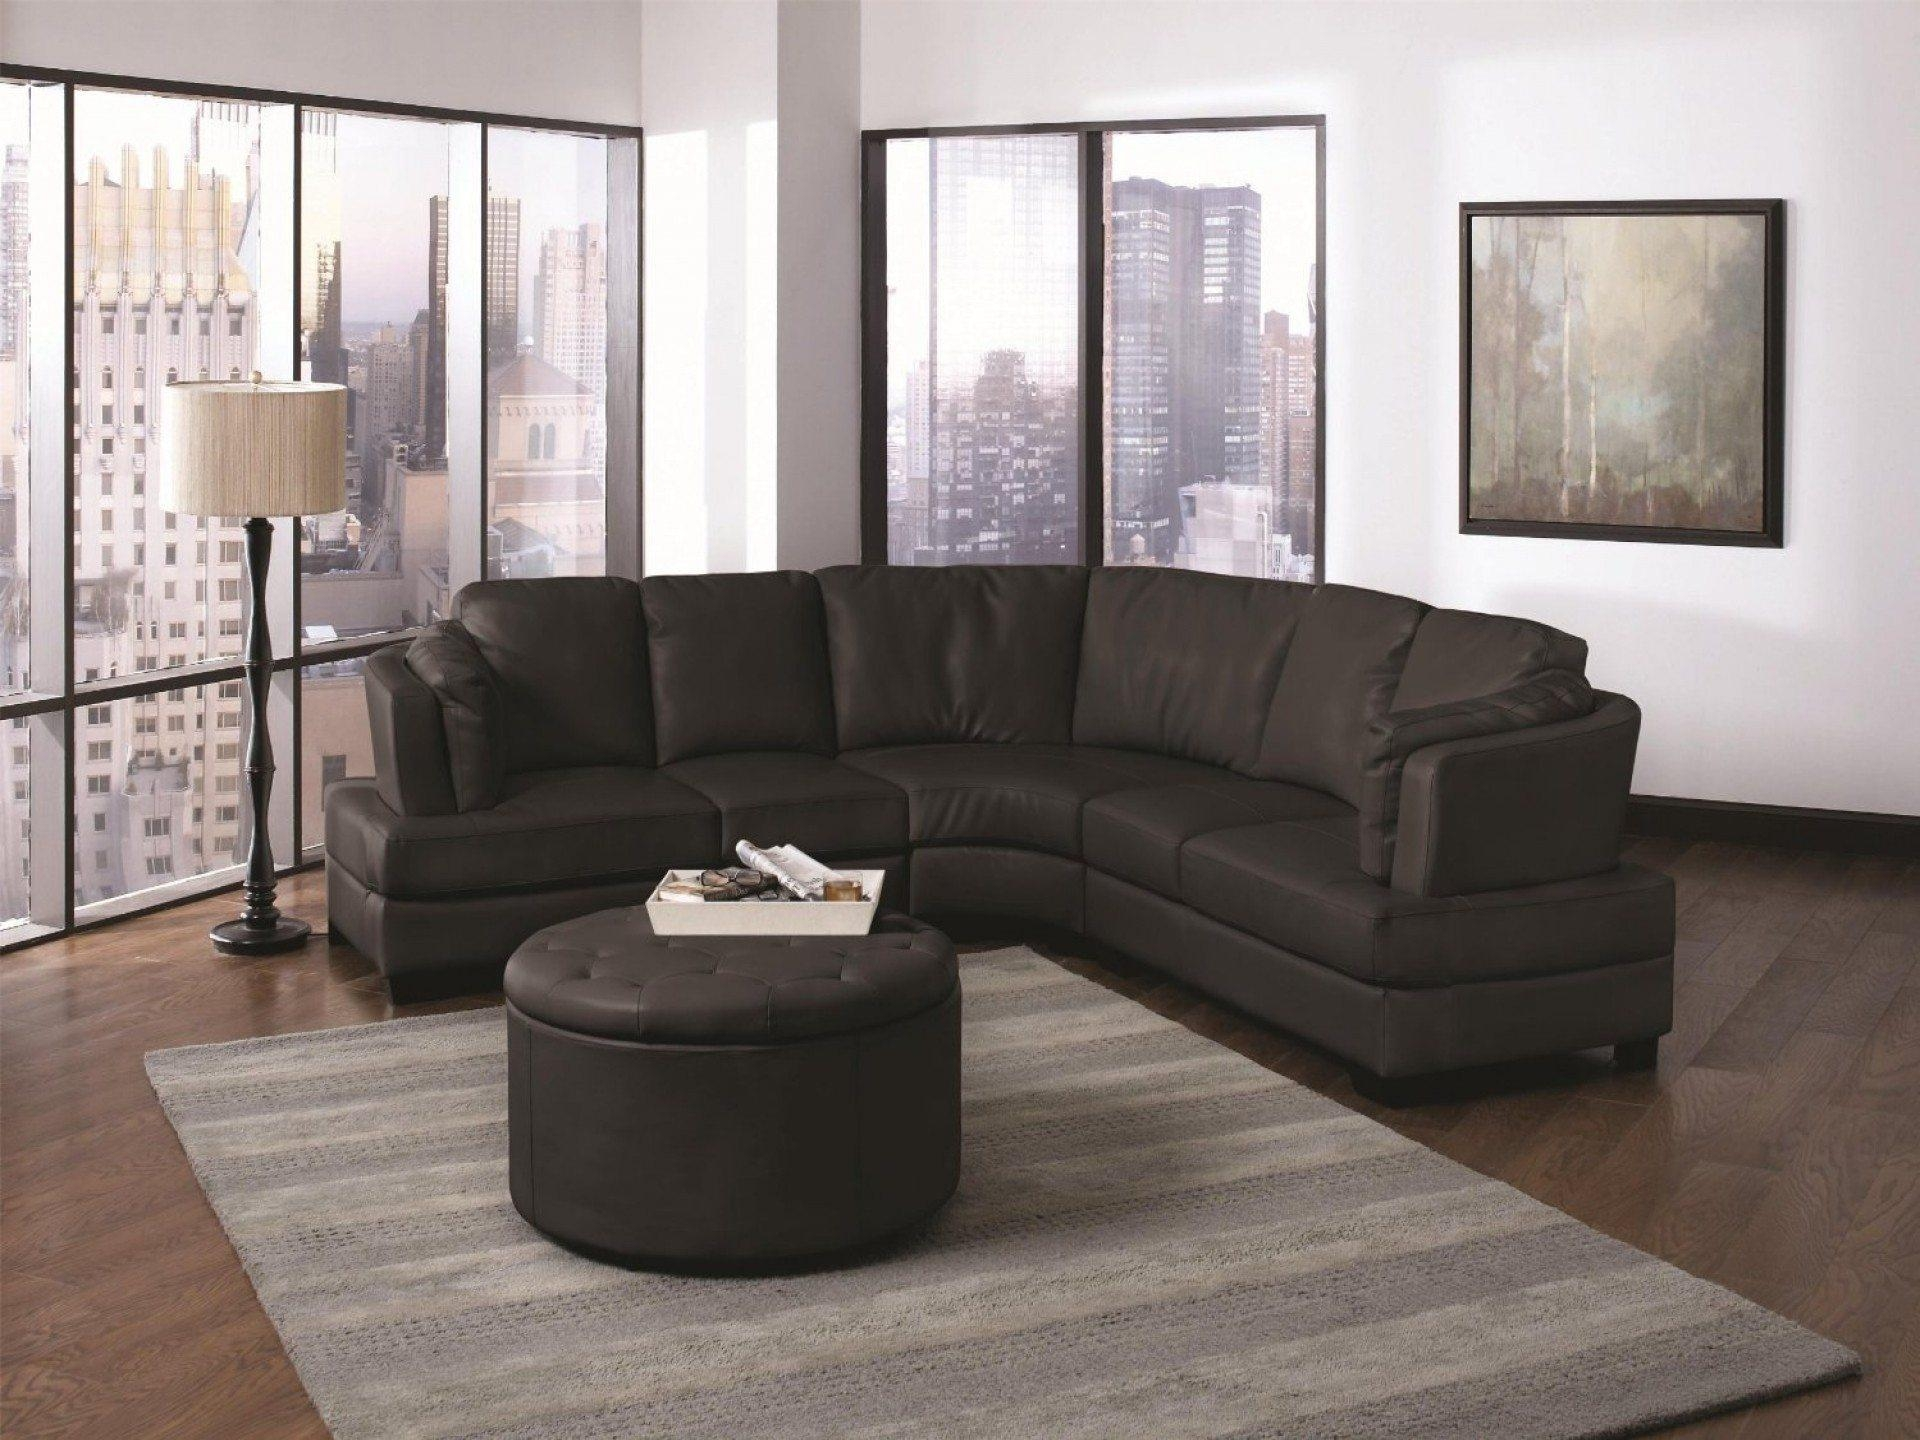 Small 2 Piece Sectional Sofa | Sofa Gallery | Kengire Inside Small 2 Piece Sectional (View 10 of 20)